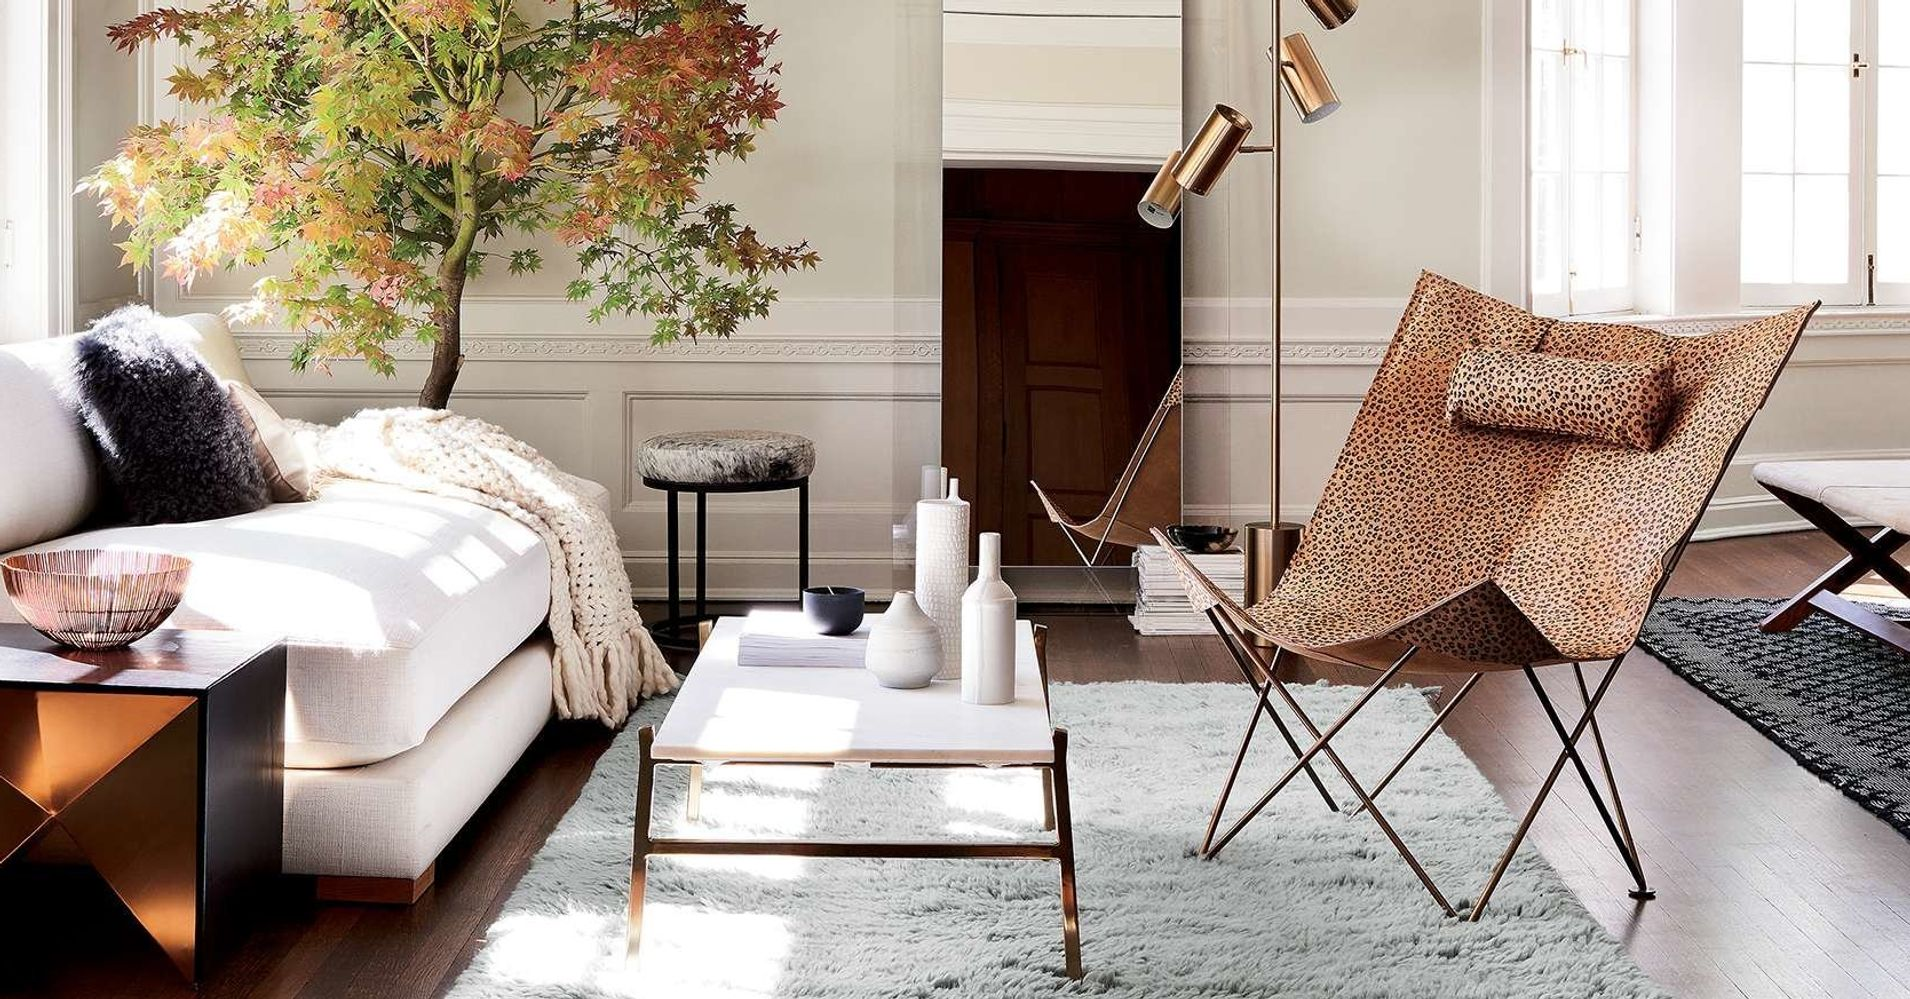 14 Furniture Stores Like West Elm To Buy Mid-Century